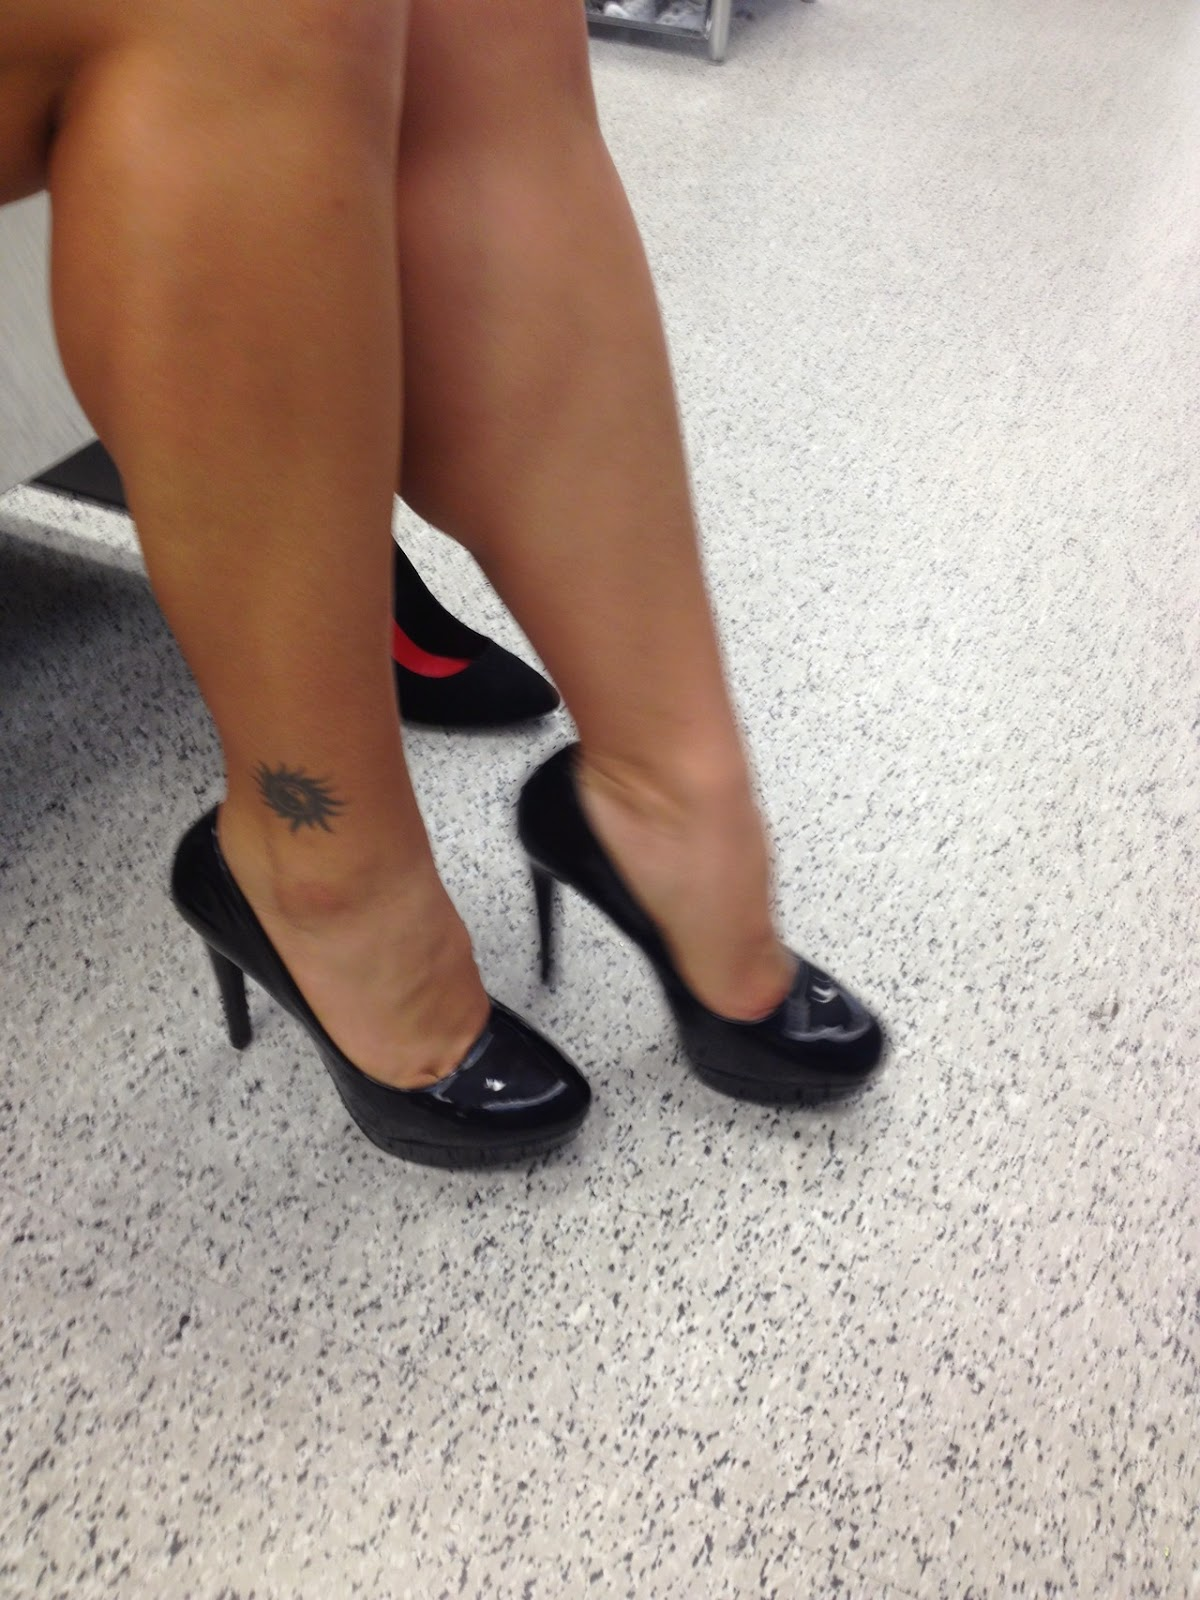 Ladies Candid Muscular Calves: LadyG muscular calves and